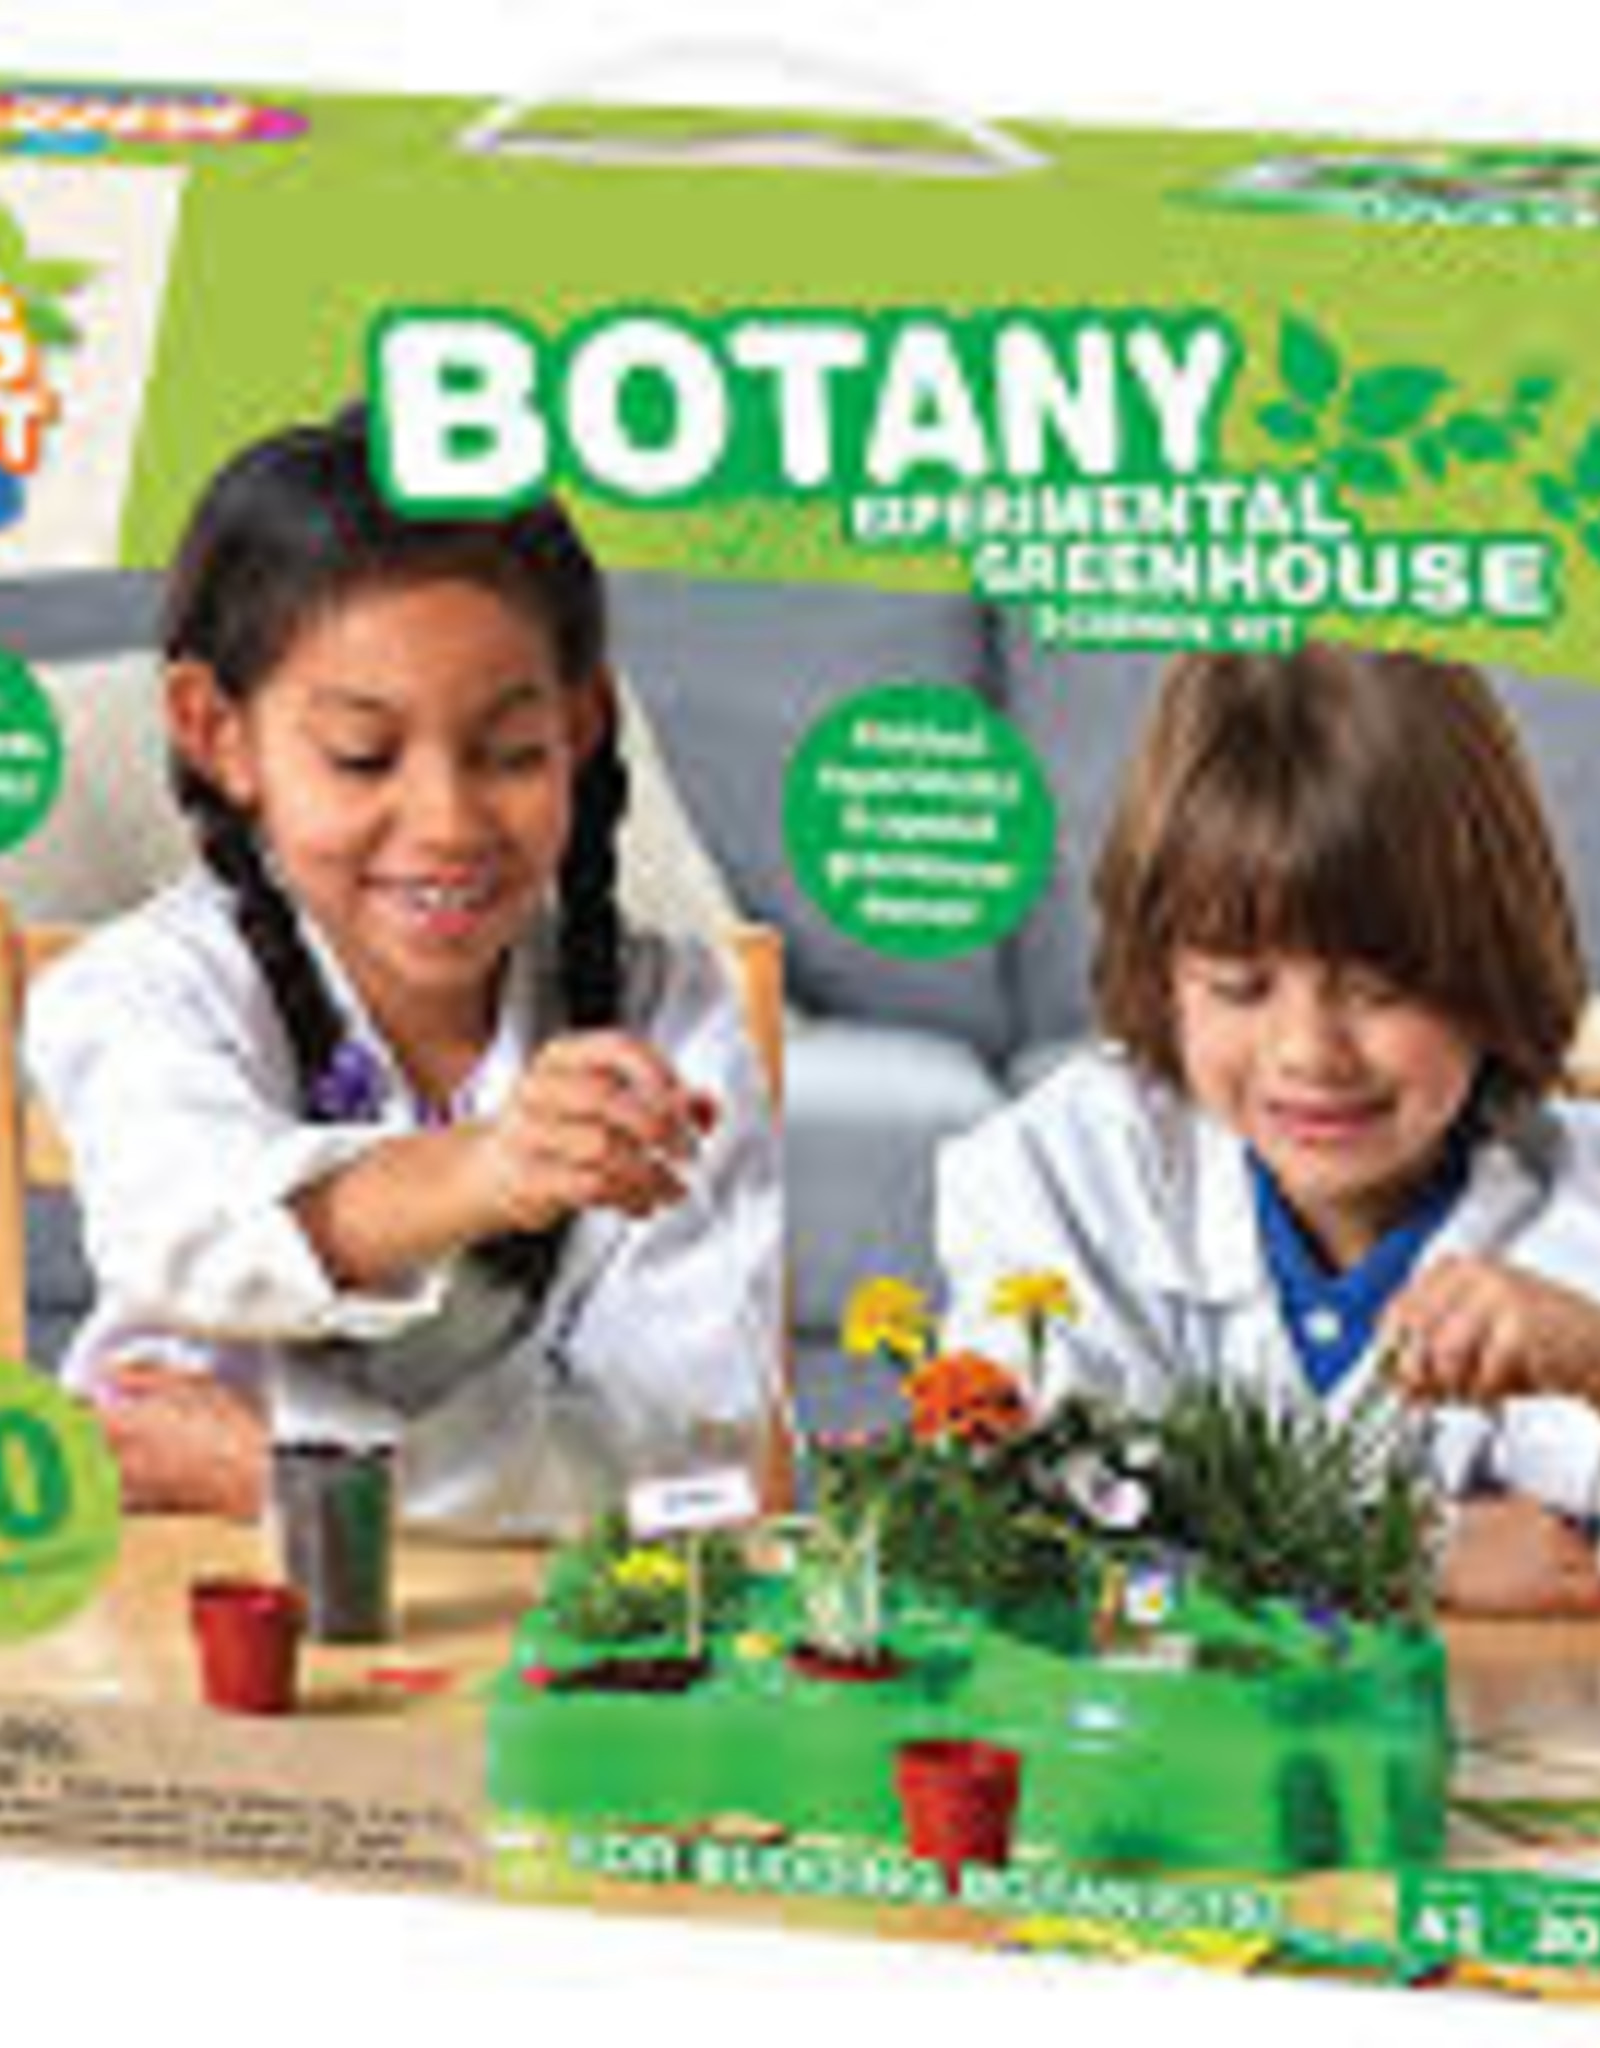 KIDS FIRST BOTANY GREENHOUSE EXPERIMENTAL